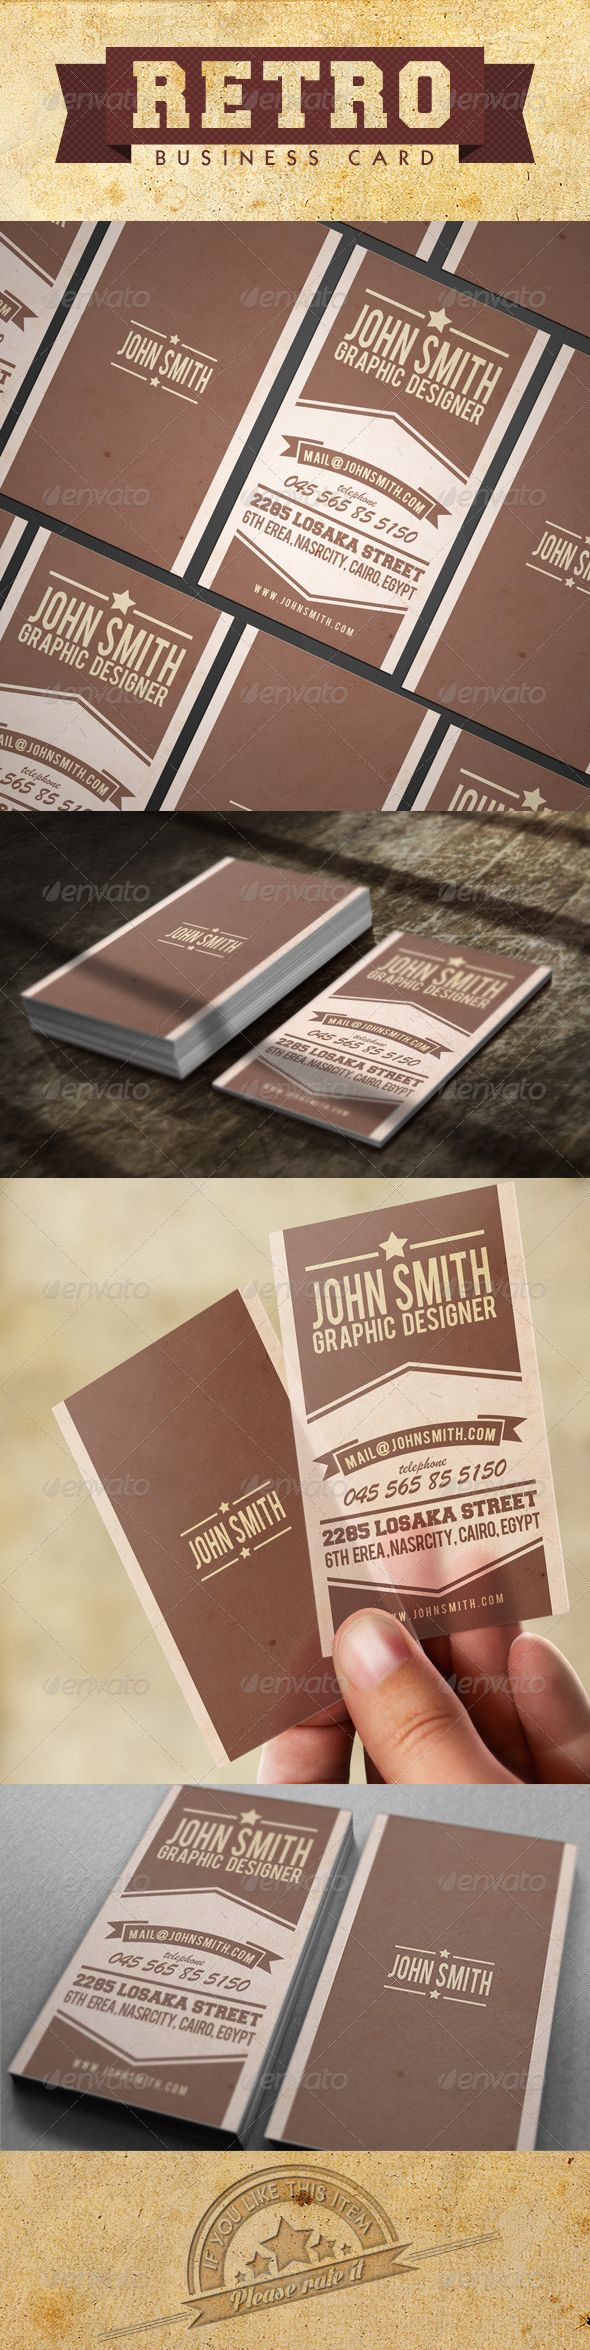 12 best brochures flyers images on pinterest corporate identity retro new business card colourmoves